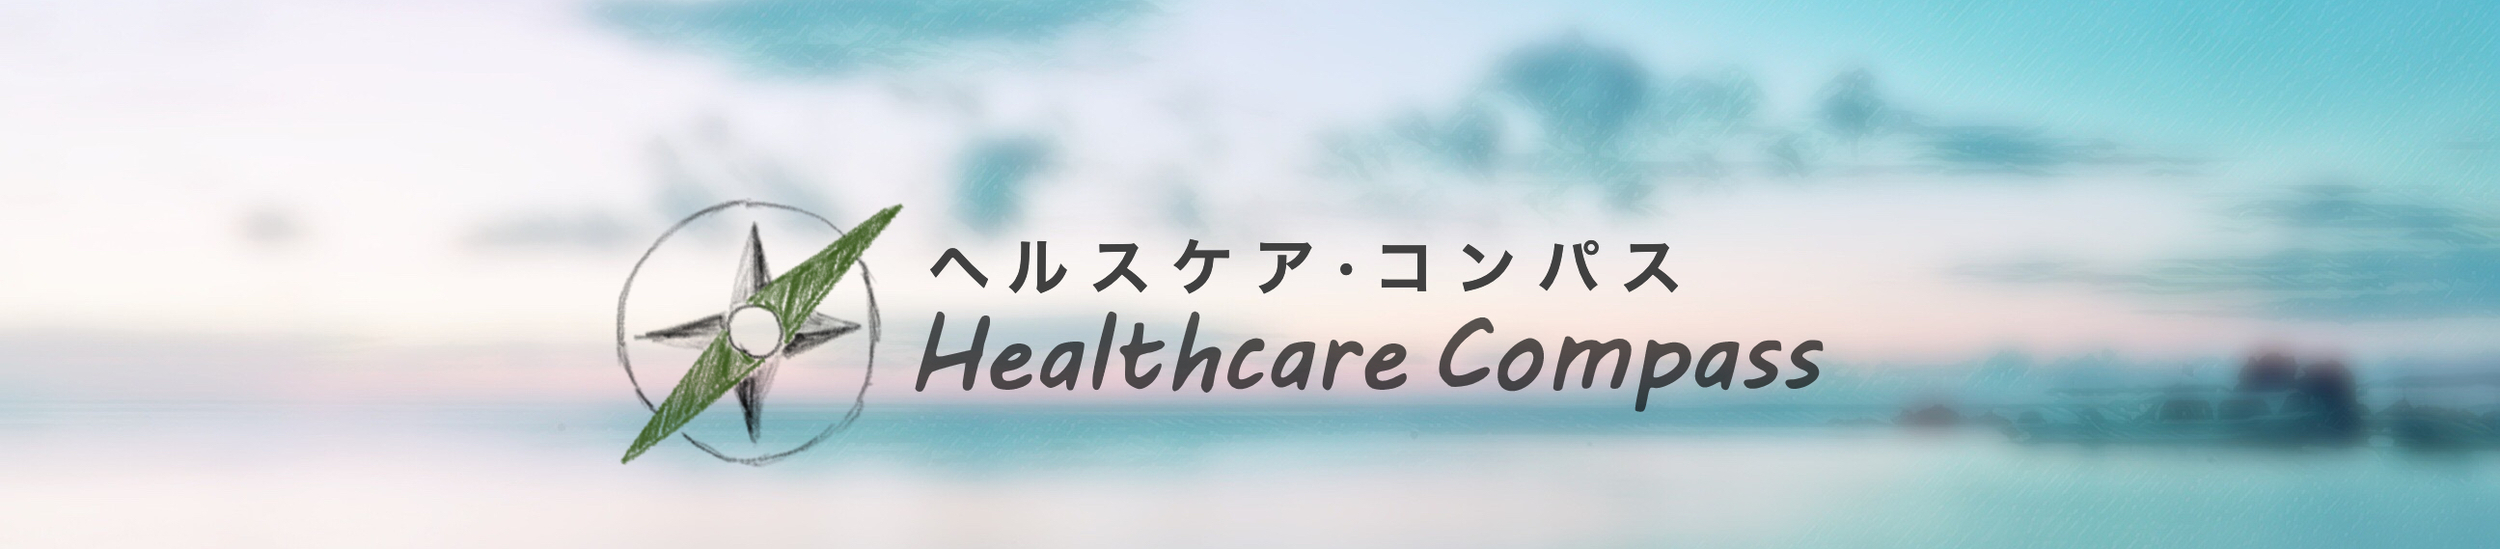 Healthcare Compass (ヘルスケアコンパス)